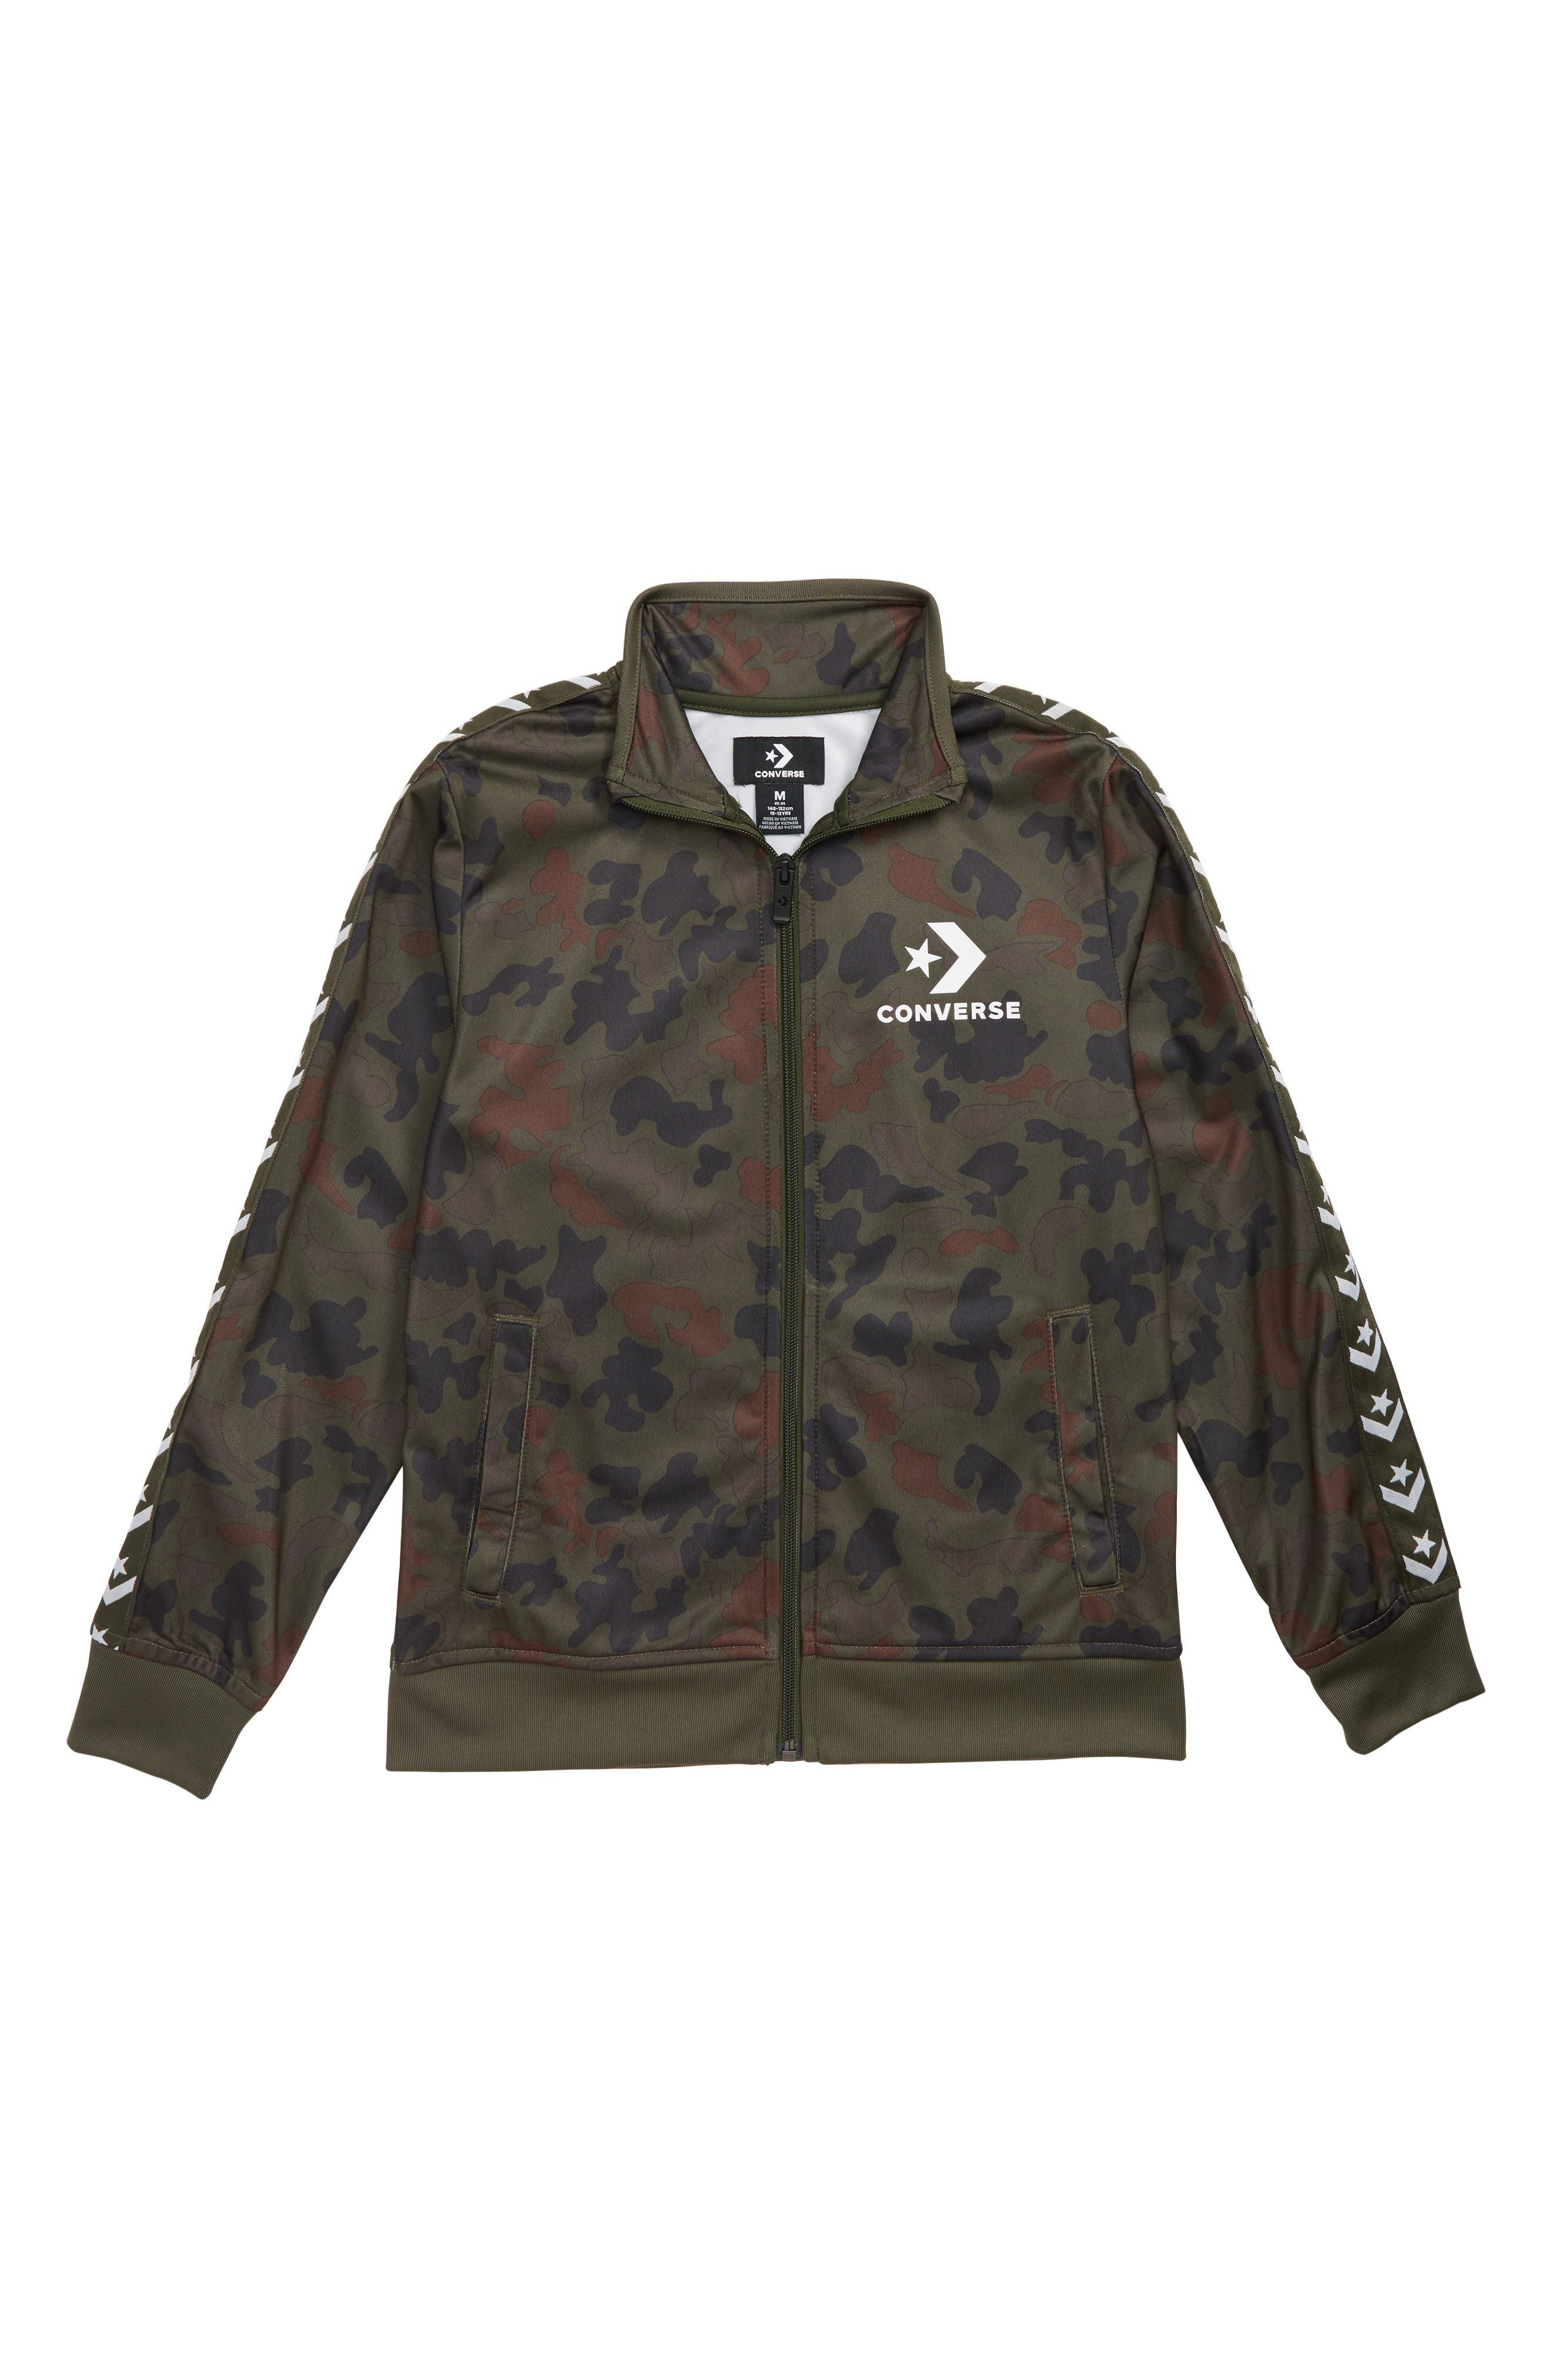 Tricot Track Jacket,                             Main thumbnail 1, color,                             HERITAGE CAMO